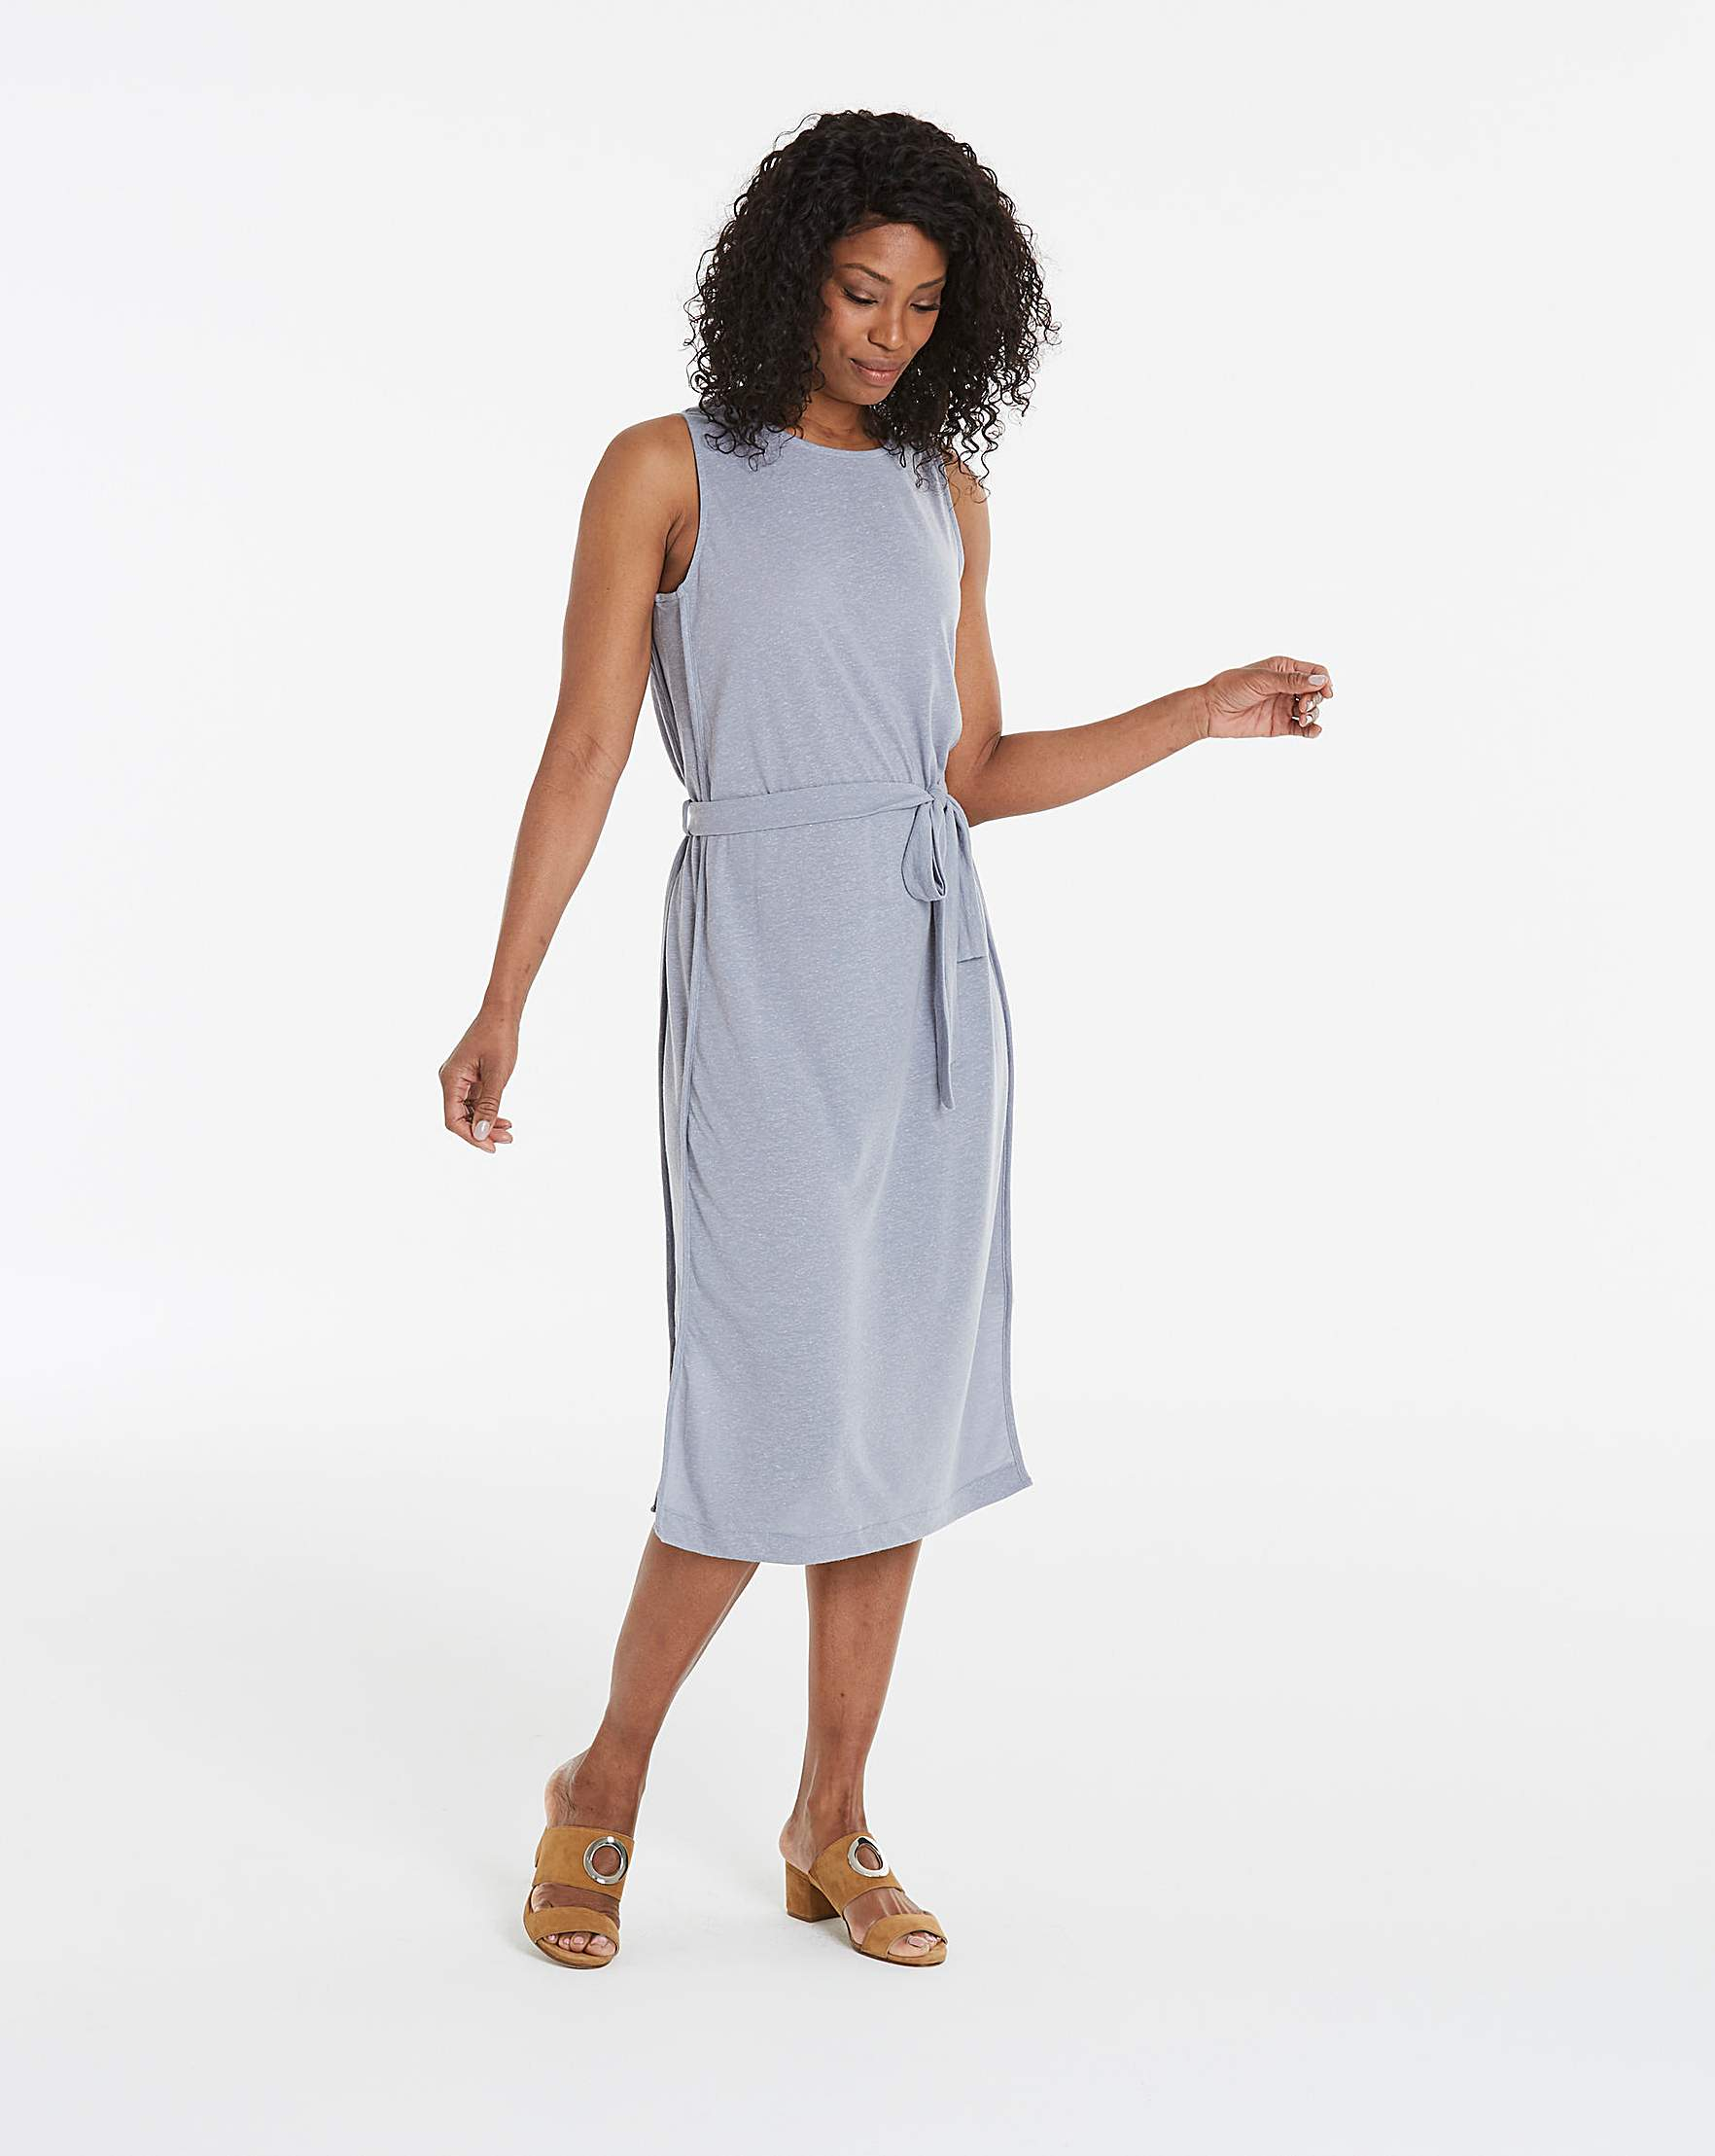 b5feaf9db4 I.Scenery Sleeveless Jersey Midi Dress